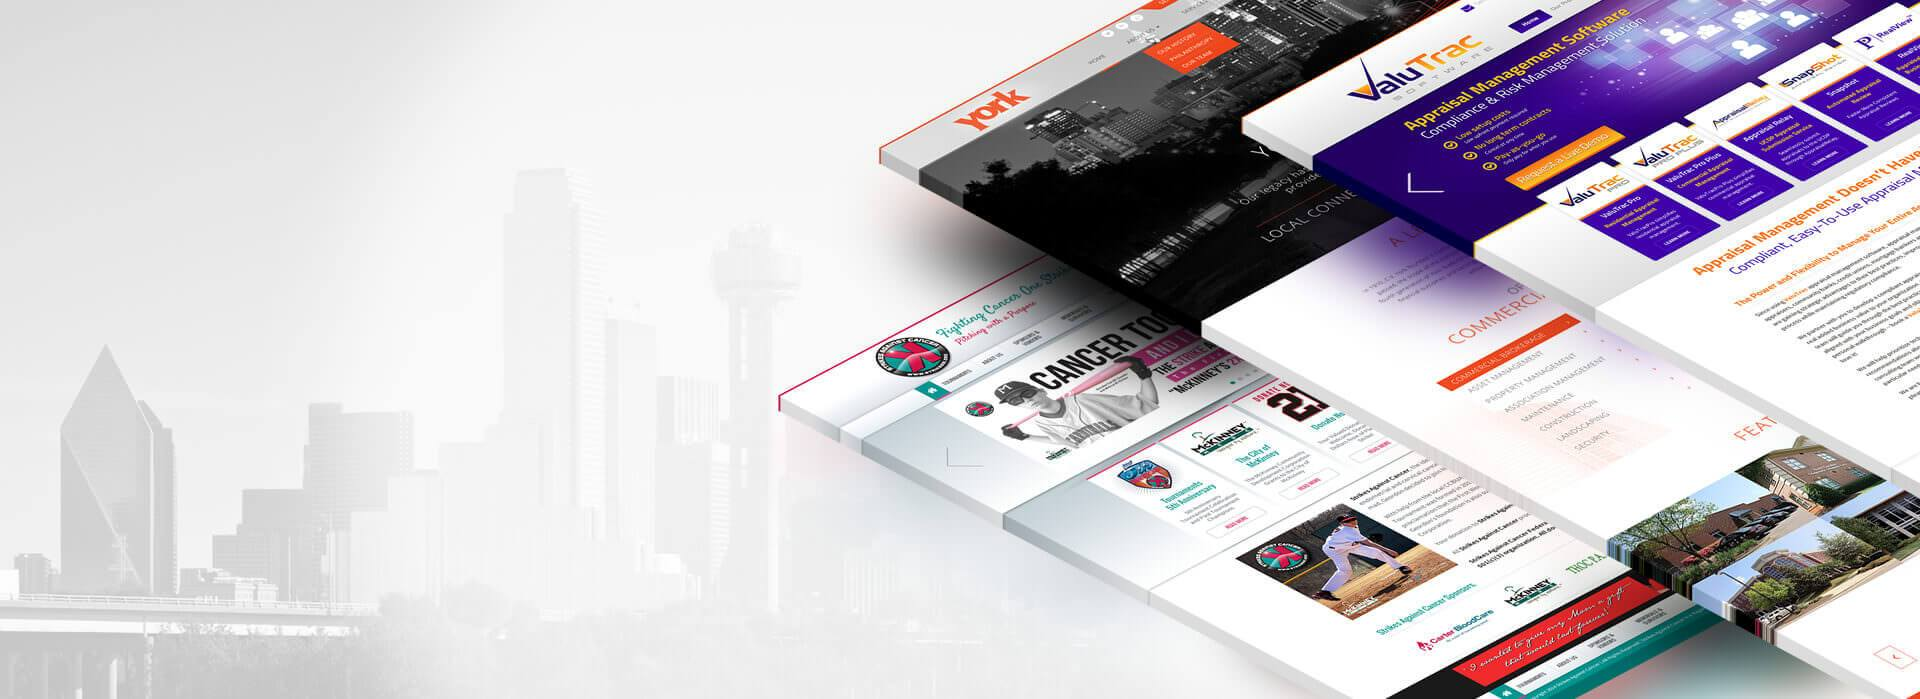 Get to Know About Latest Web Designs Trends of 2018